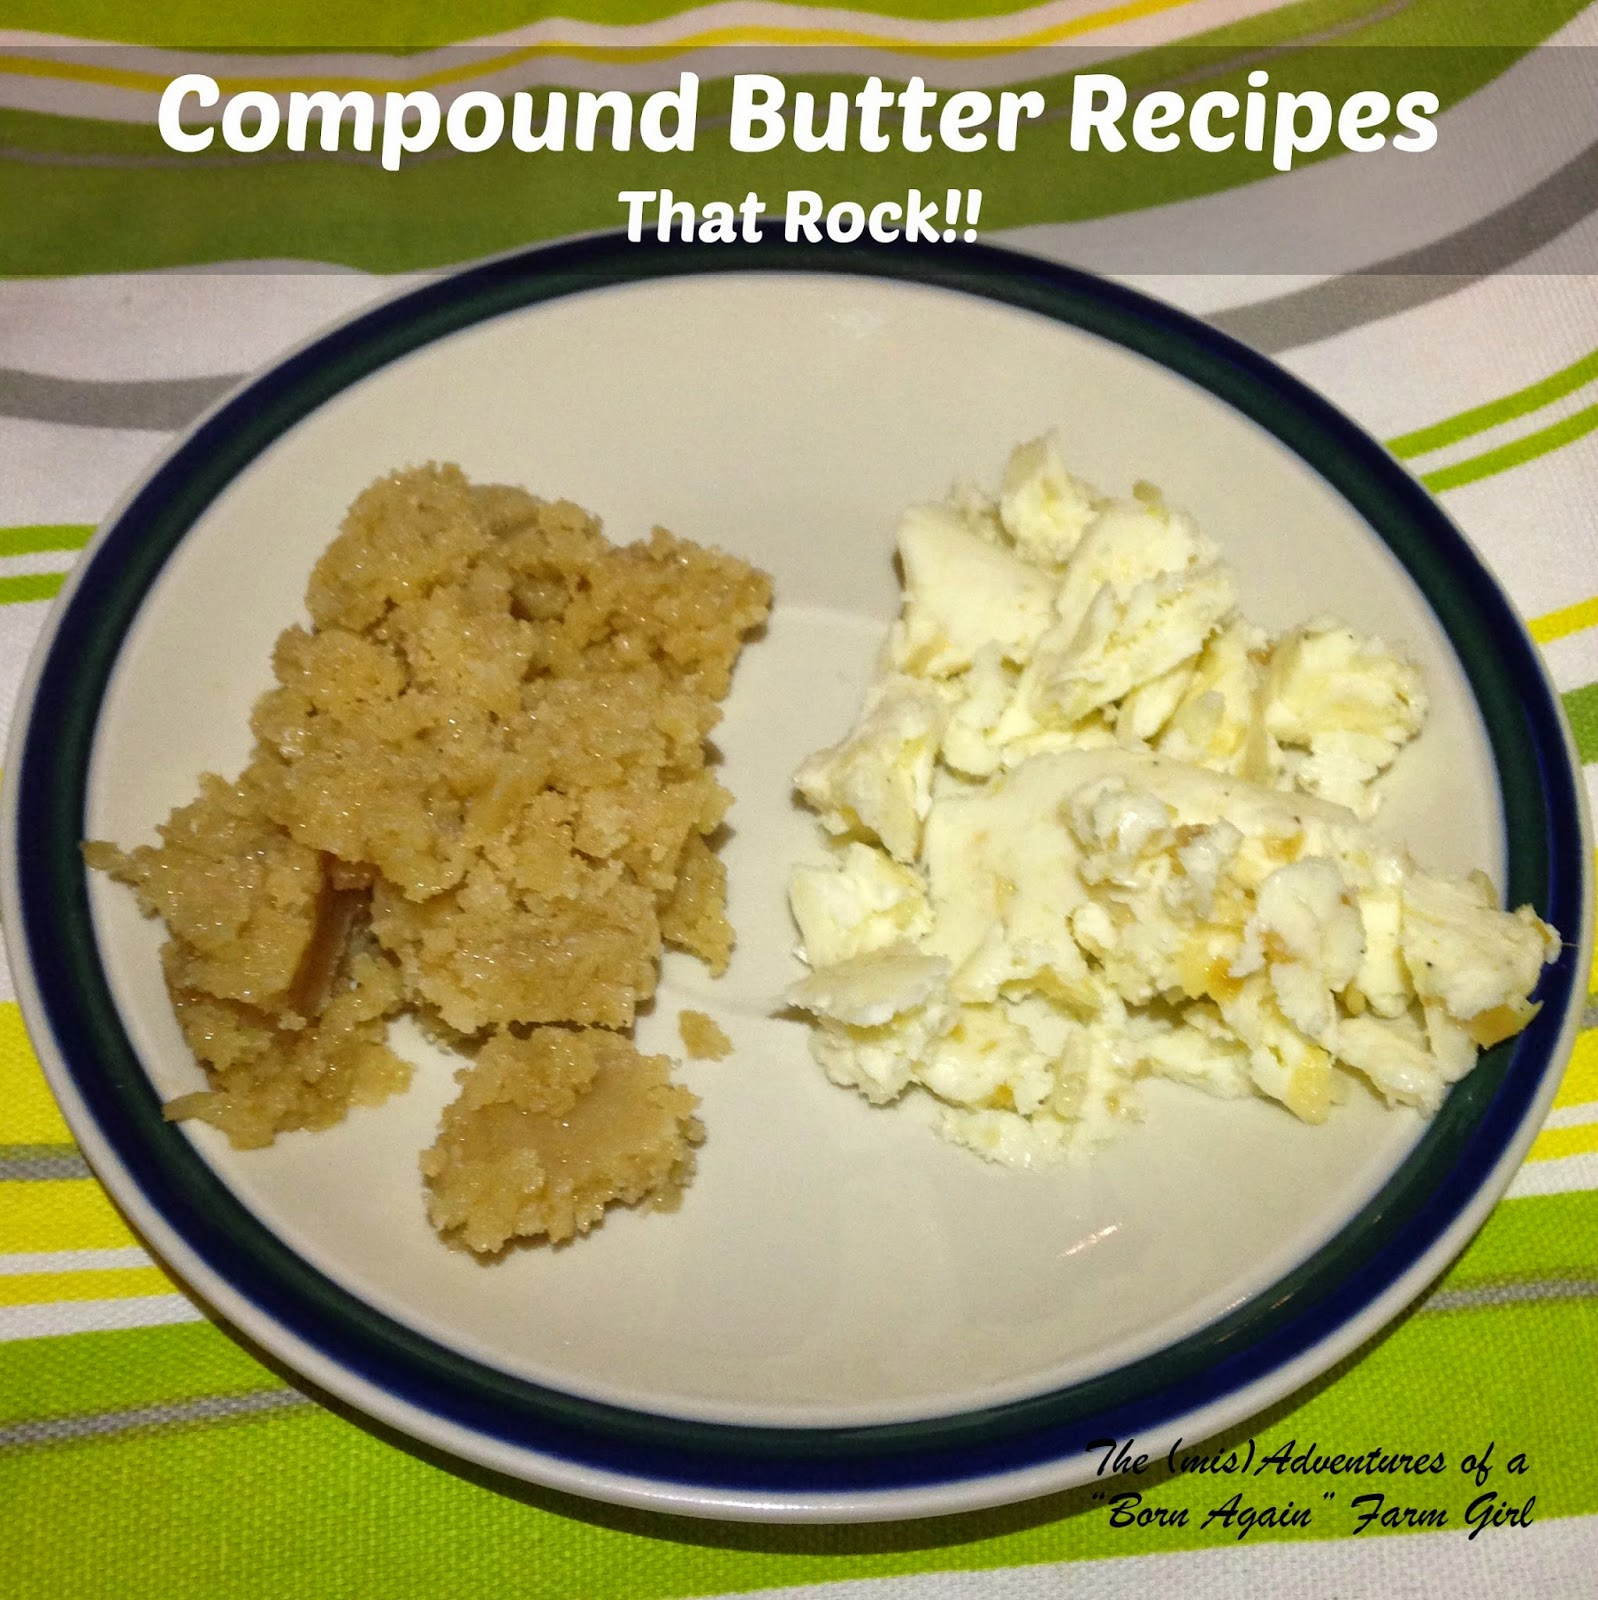 Compound Butter Recipes that ROCK!!